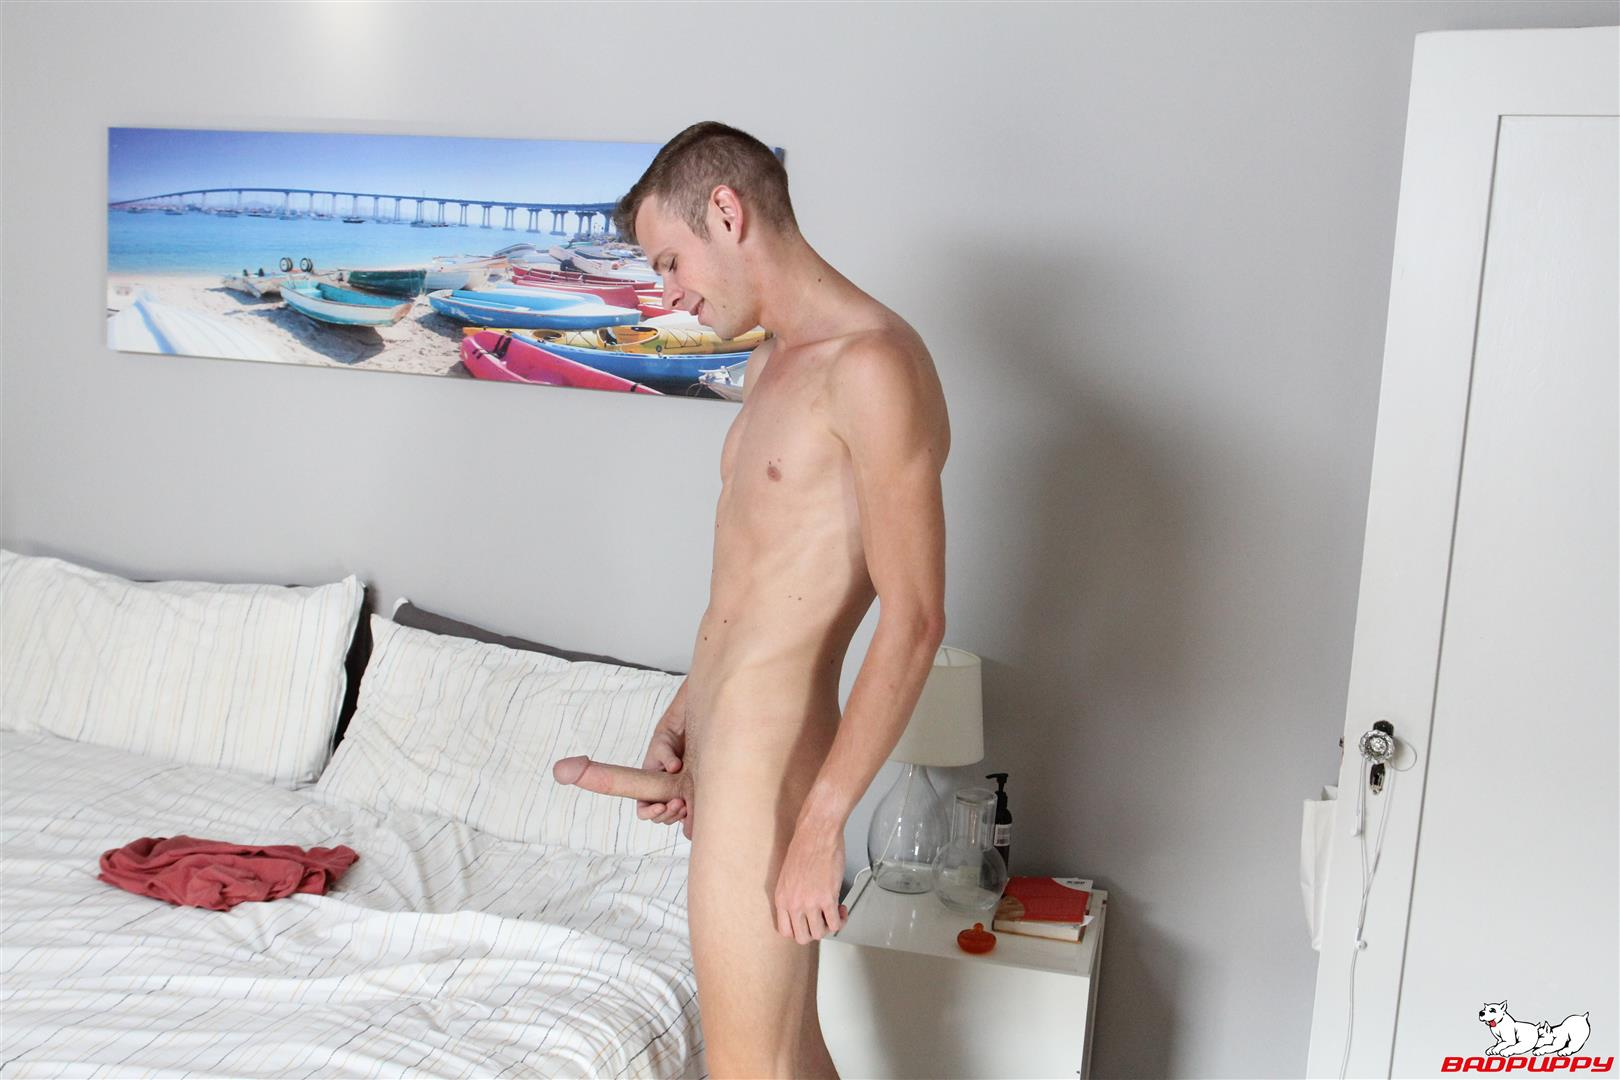 Badpuppy-Cameron-Taylor-Big-Dick-Twink-Jerking-Off-Video-07 Big Dick Twink Cameron Taylor Showing Off And Jerking Off